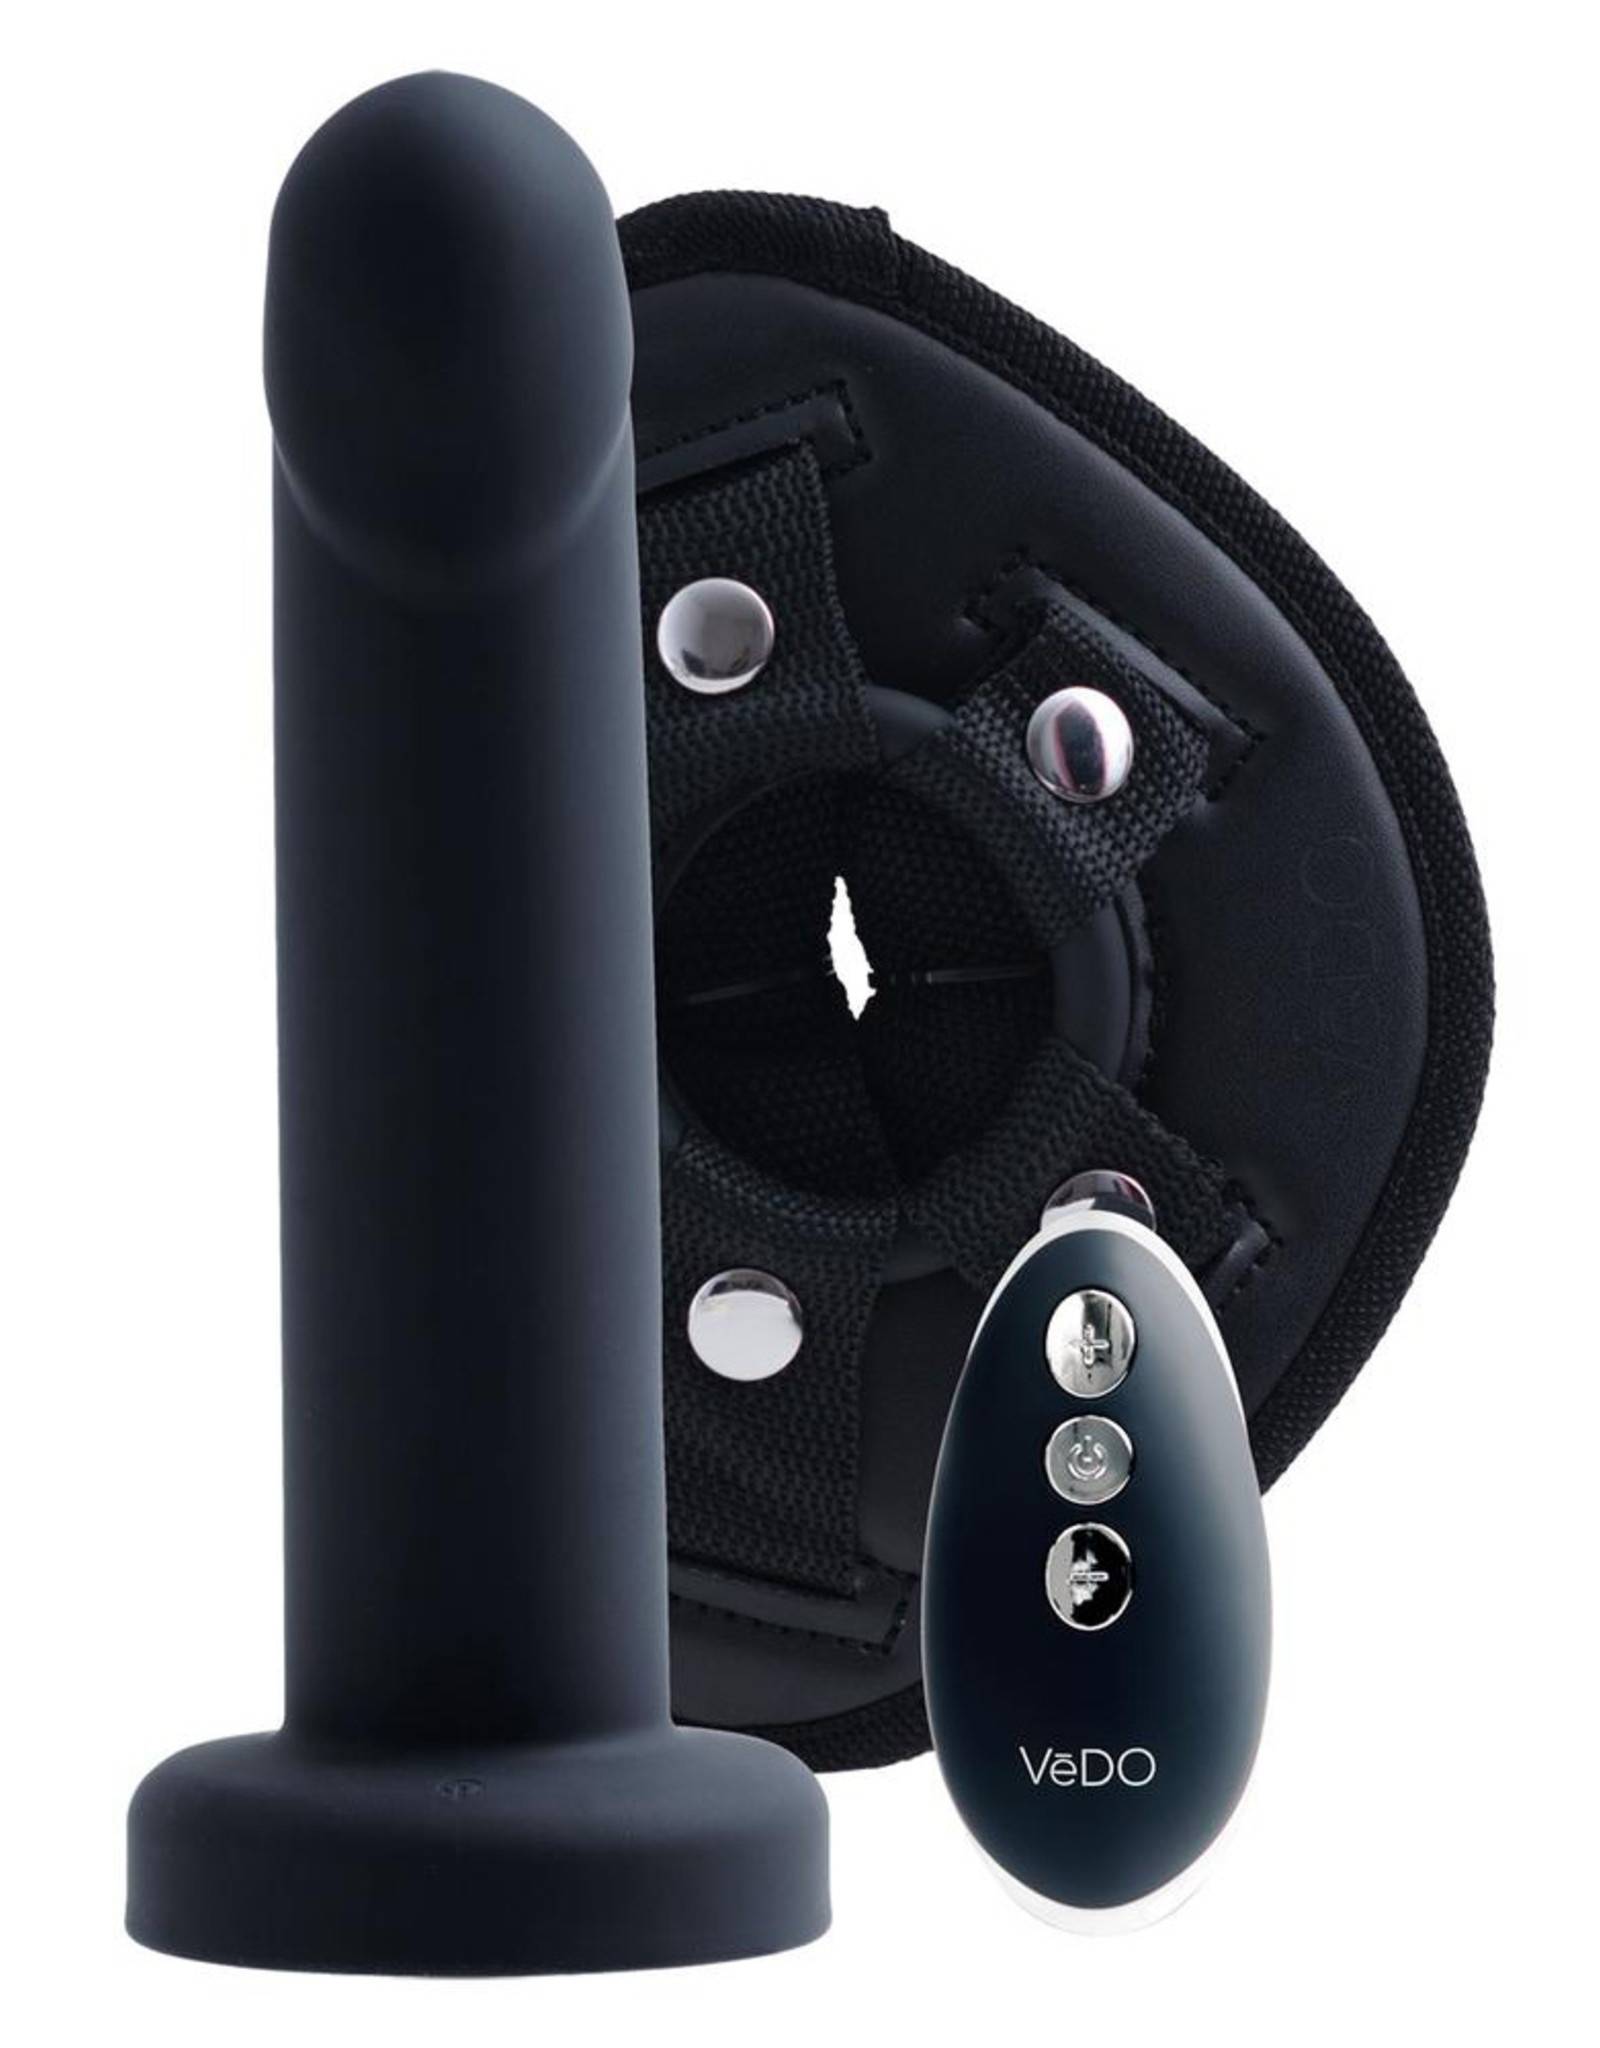 VeDO Vedo Strapped Rechargeable